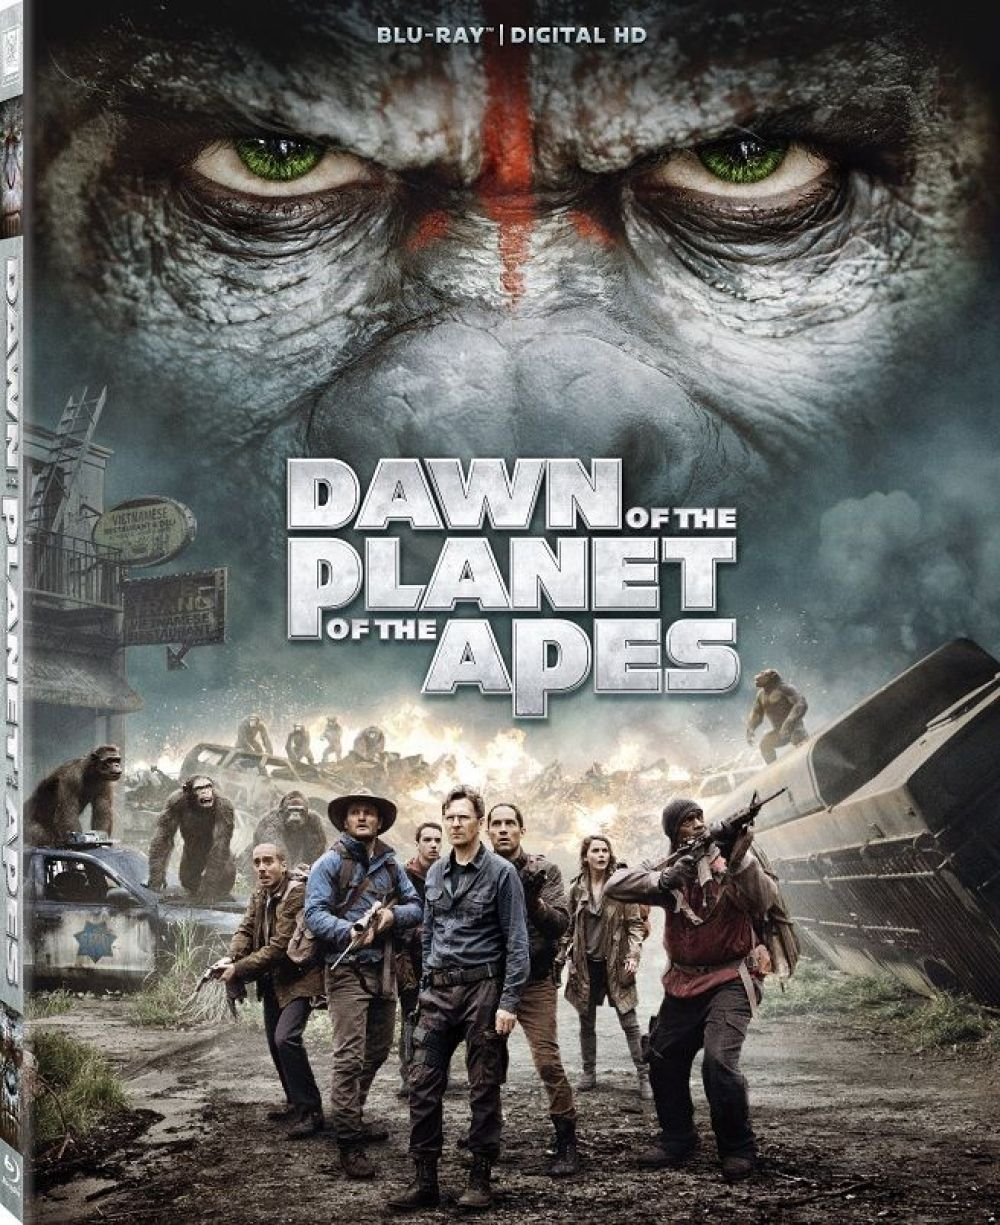 Watch and Download War For The Planet Of The Apes 2017 Hindi Dubbed movie  on JoyMovies